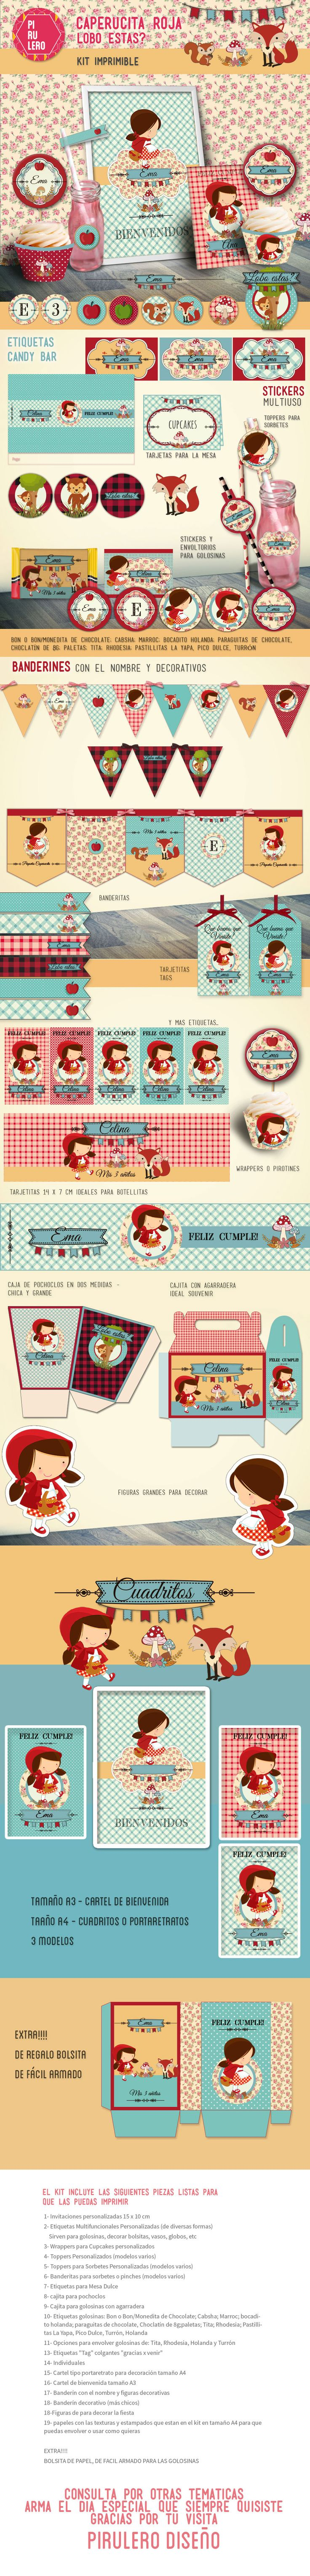 Kit imprimible Caperucita Roja Red Riding Hood #caperucita #caperucitaroja #littlered #littleredridinghood #kitimprimible #RedRidingHood